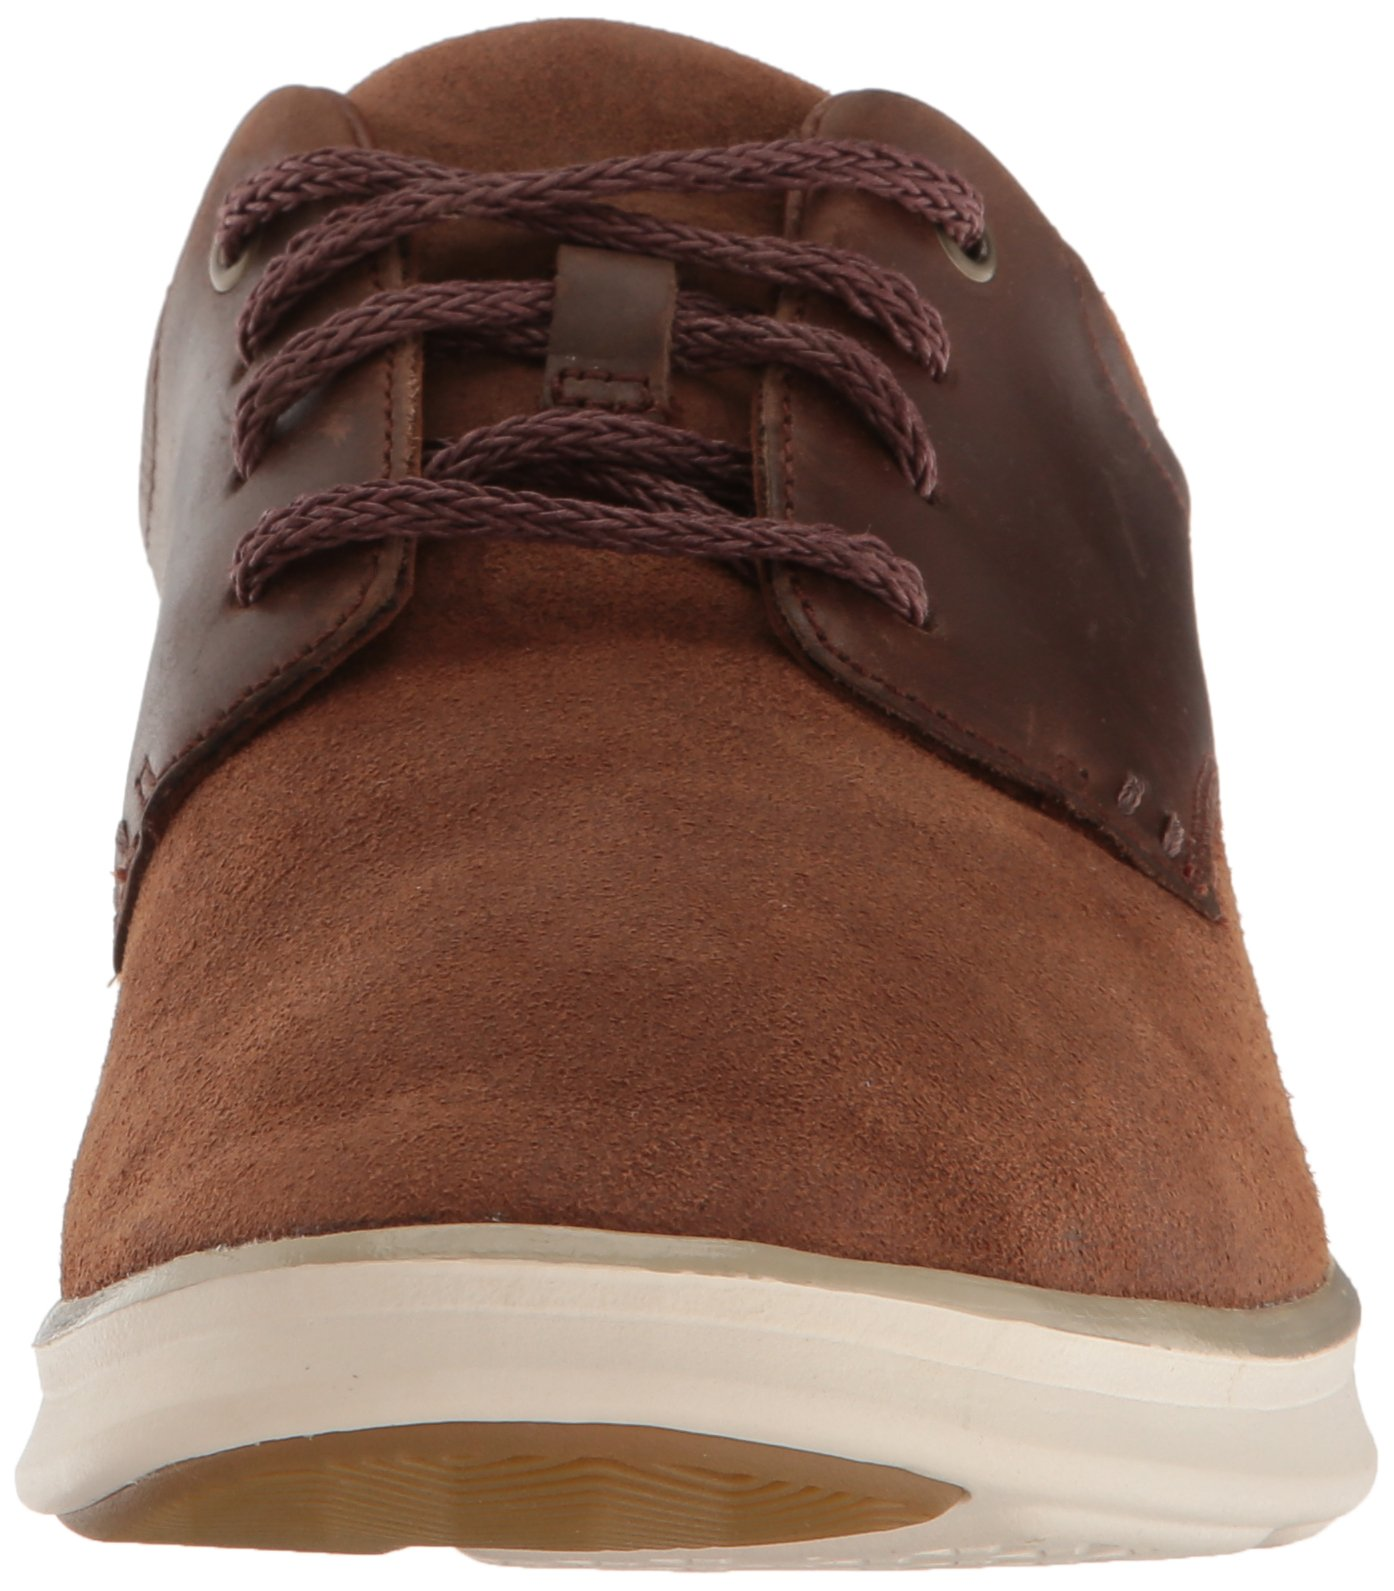 UGG Men's Hepner Fashion Sneaker Chestnut 11.5 M US by UGG (Image #4)